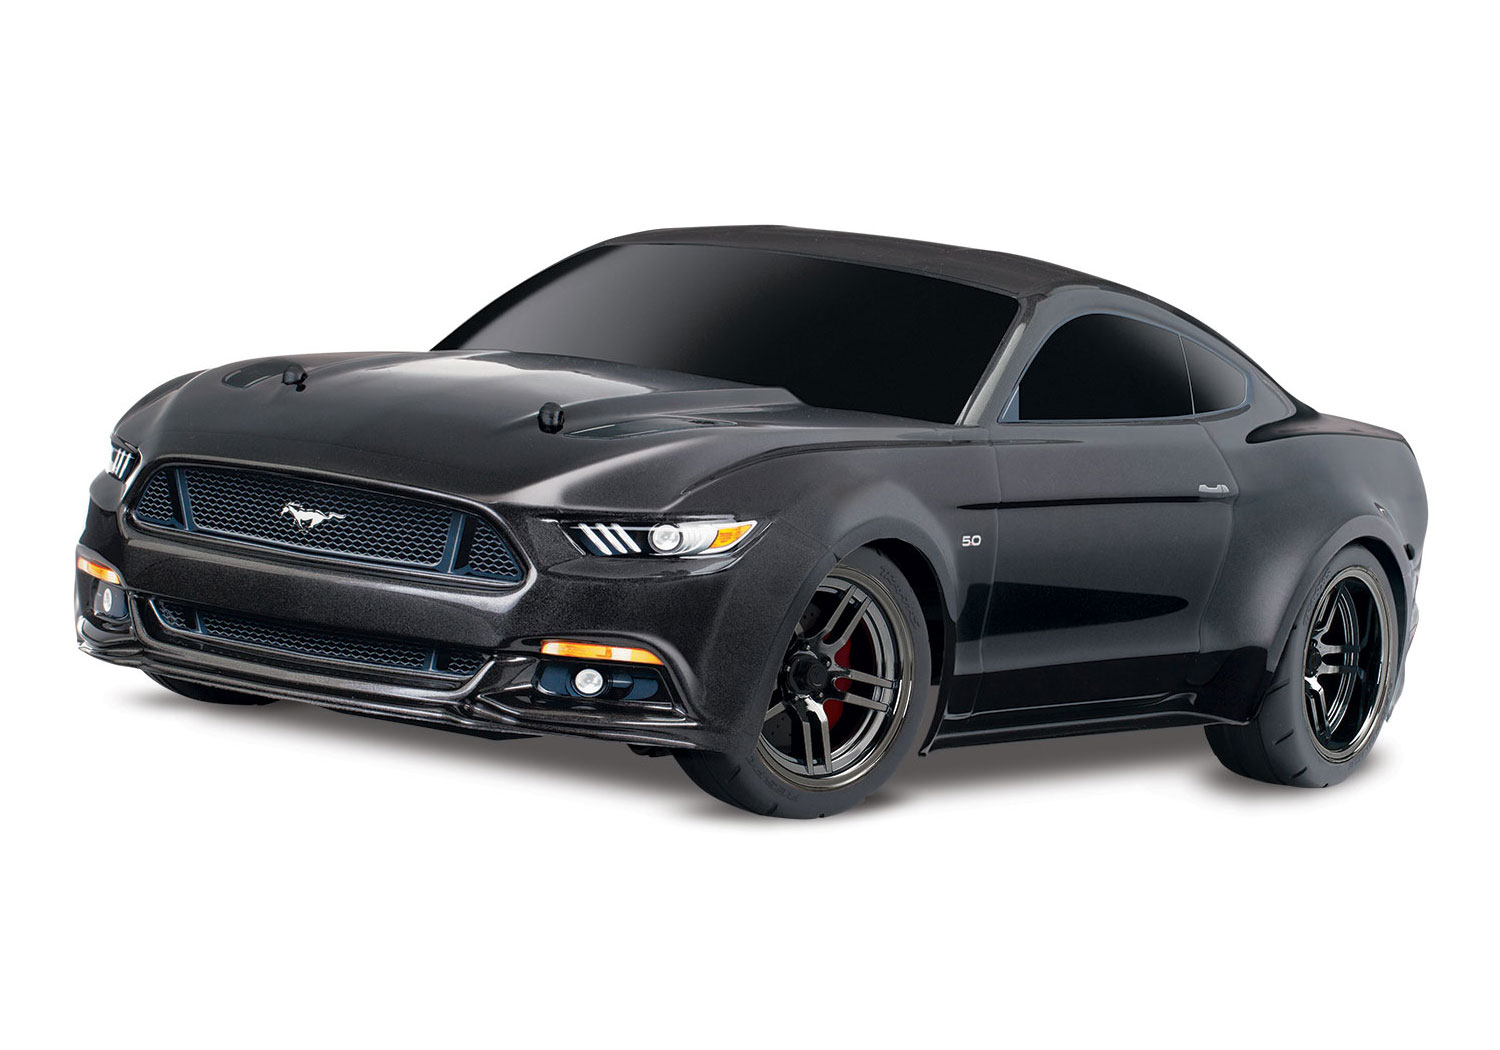 Traxxas Ford Mustang Gt on V6 Engine Exploded View